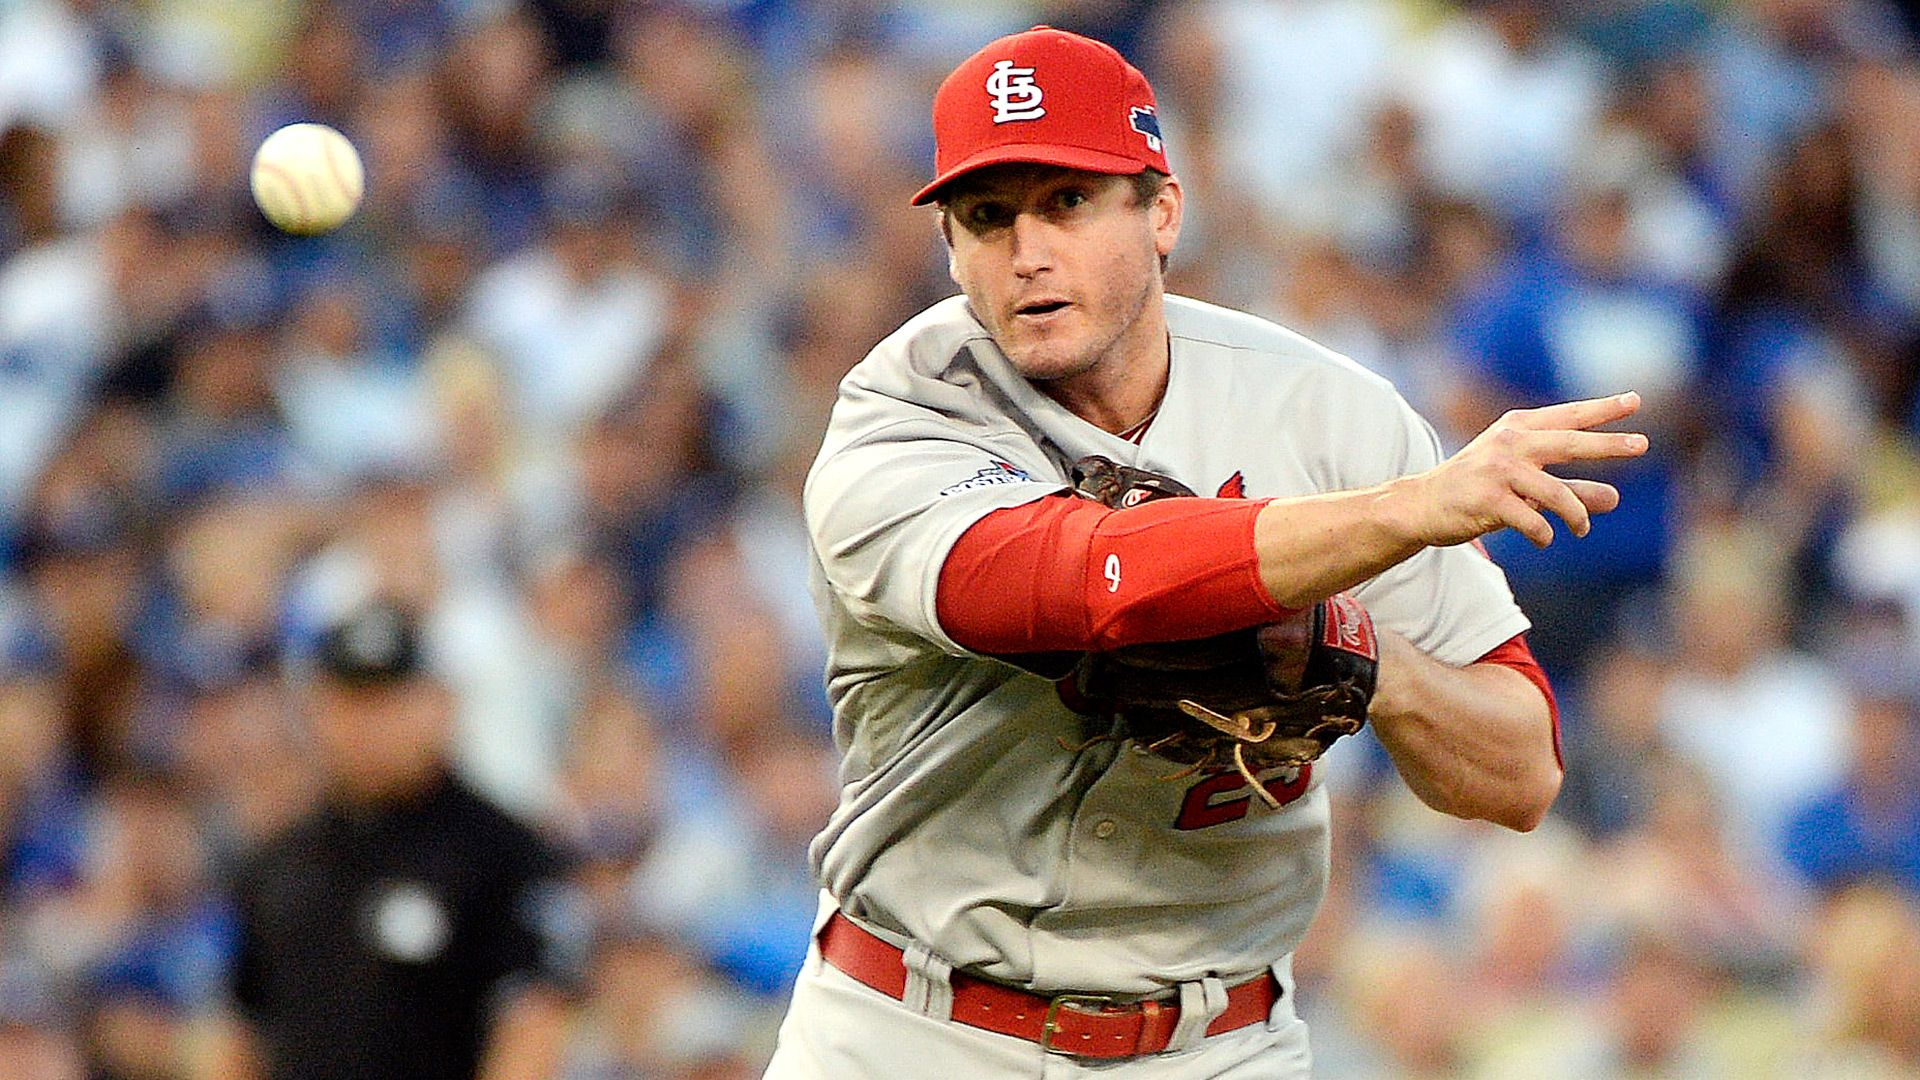 David Freese traded to Angels